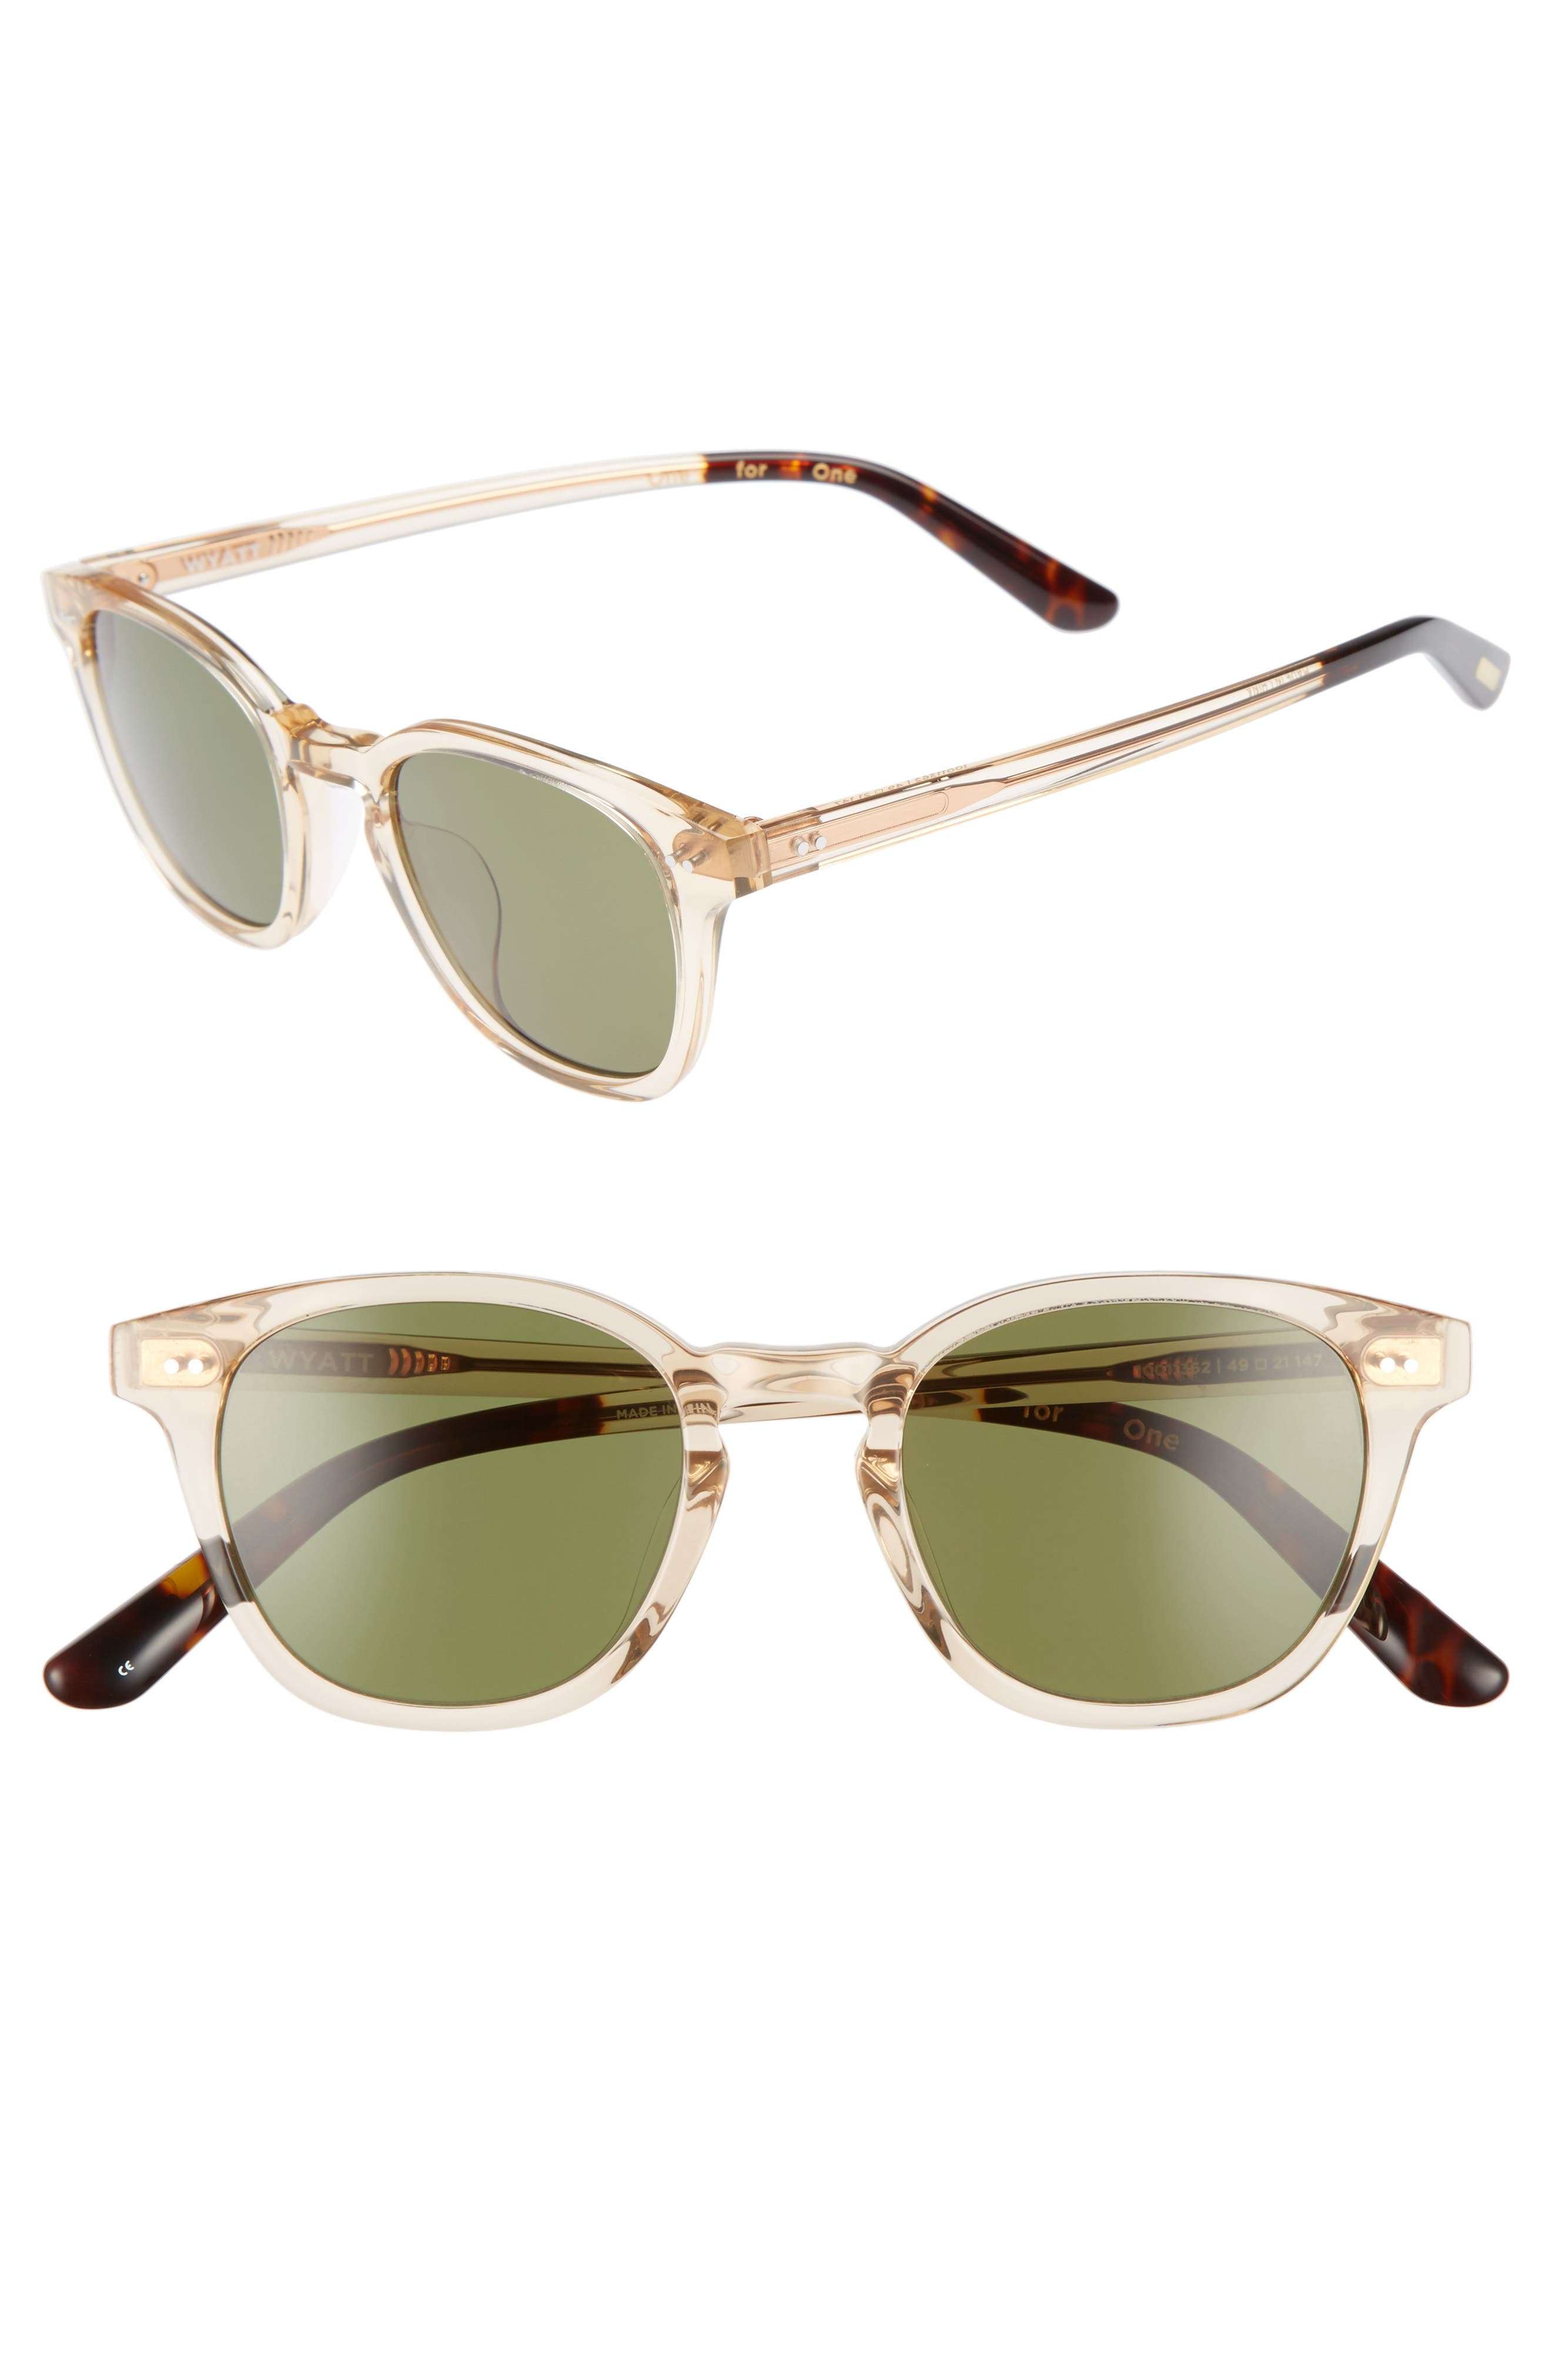 Wyatt 49mm Sunglasses,                             Main thumbnail 1, color,                             100